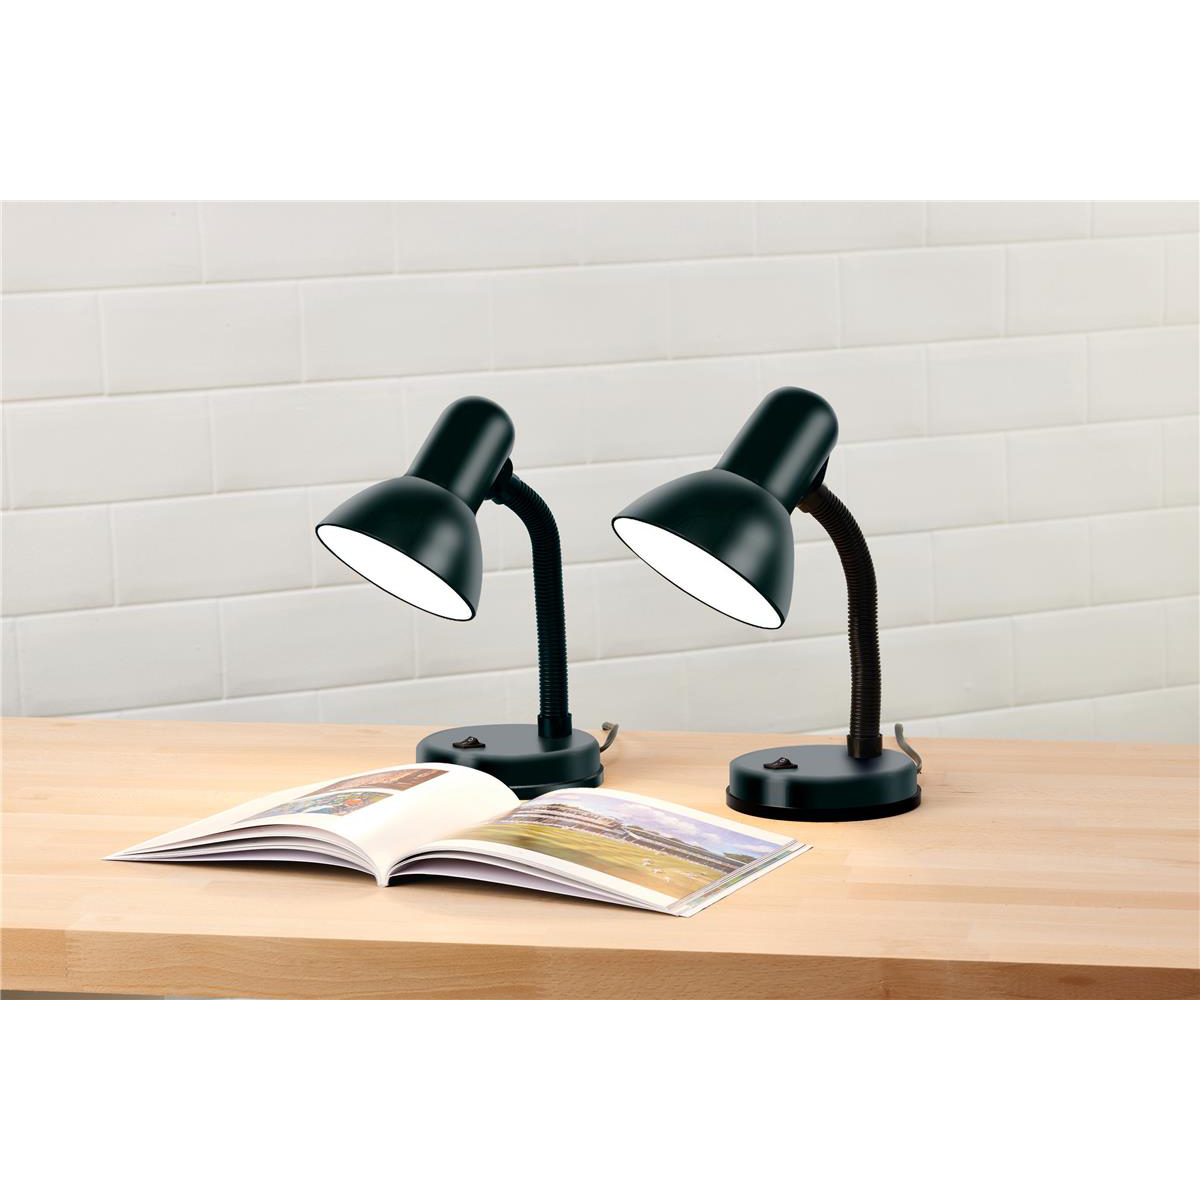 Desk Lamp Flexible Neck 35W Maximum Height of 340mm Base Size of 120x120x40mm Black